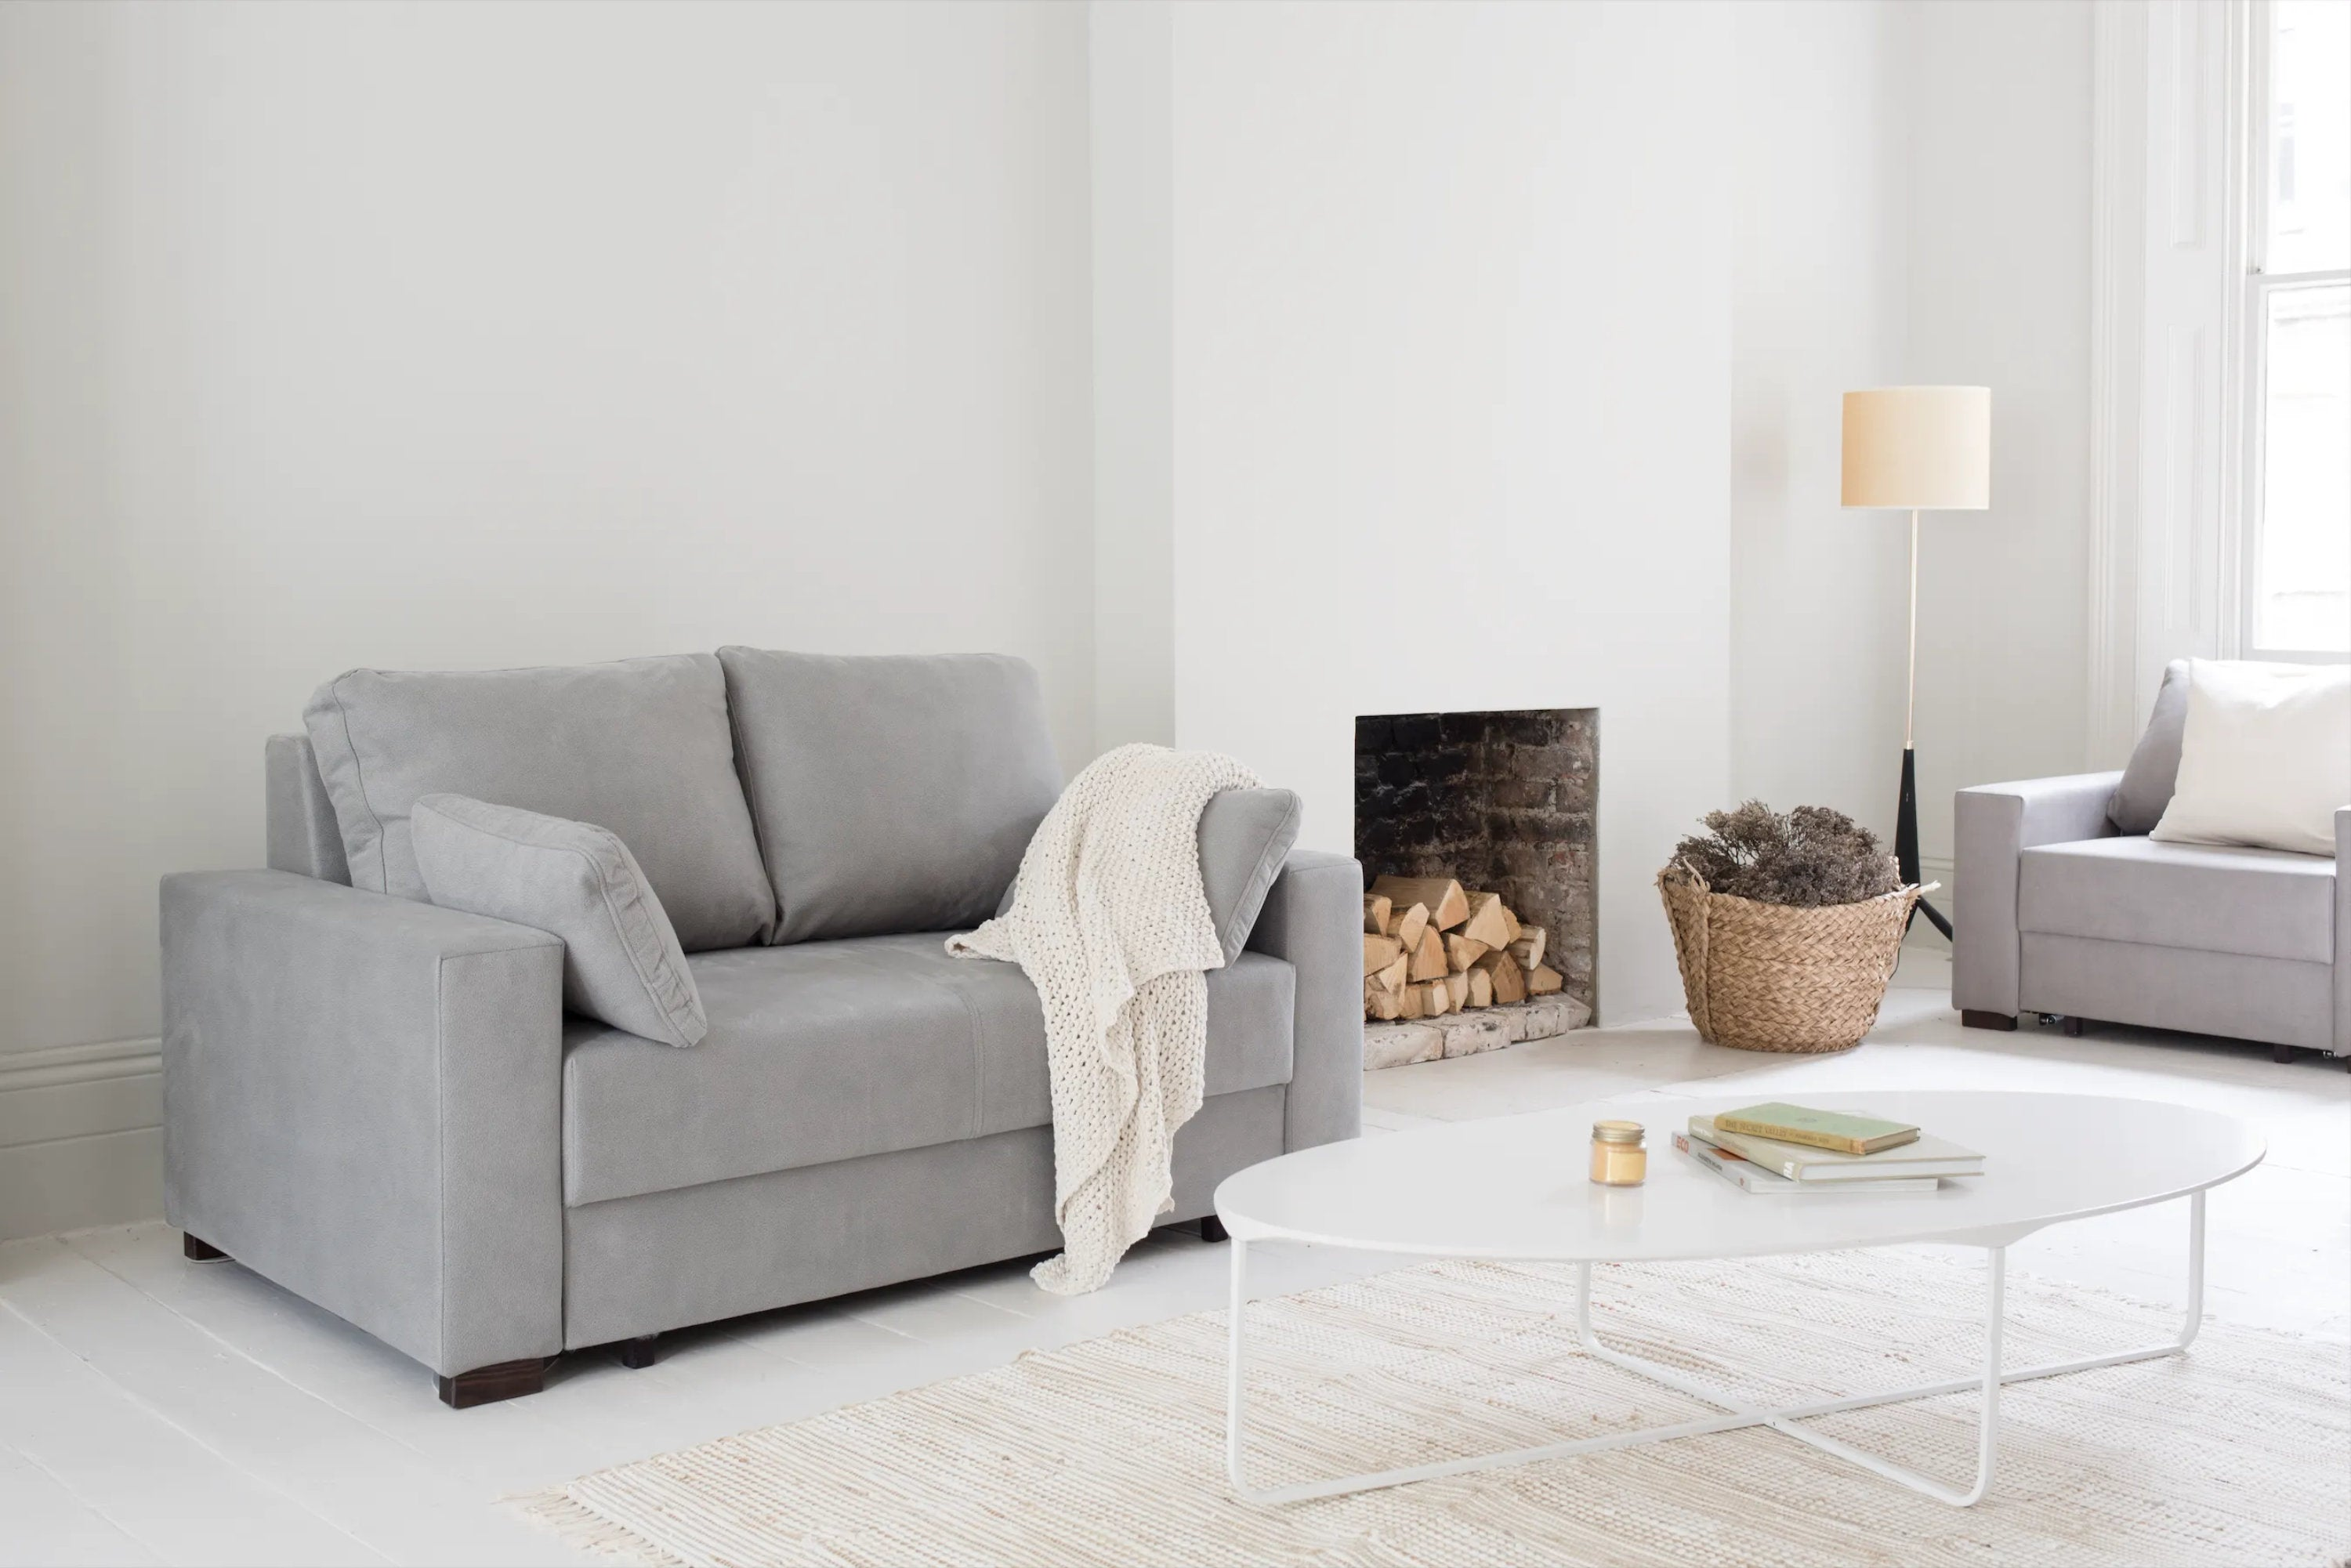 Two Seater Sofa Beds Double Small Sofa Beds Cocoon